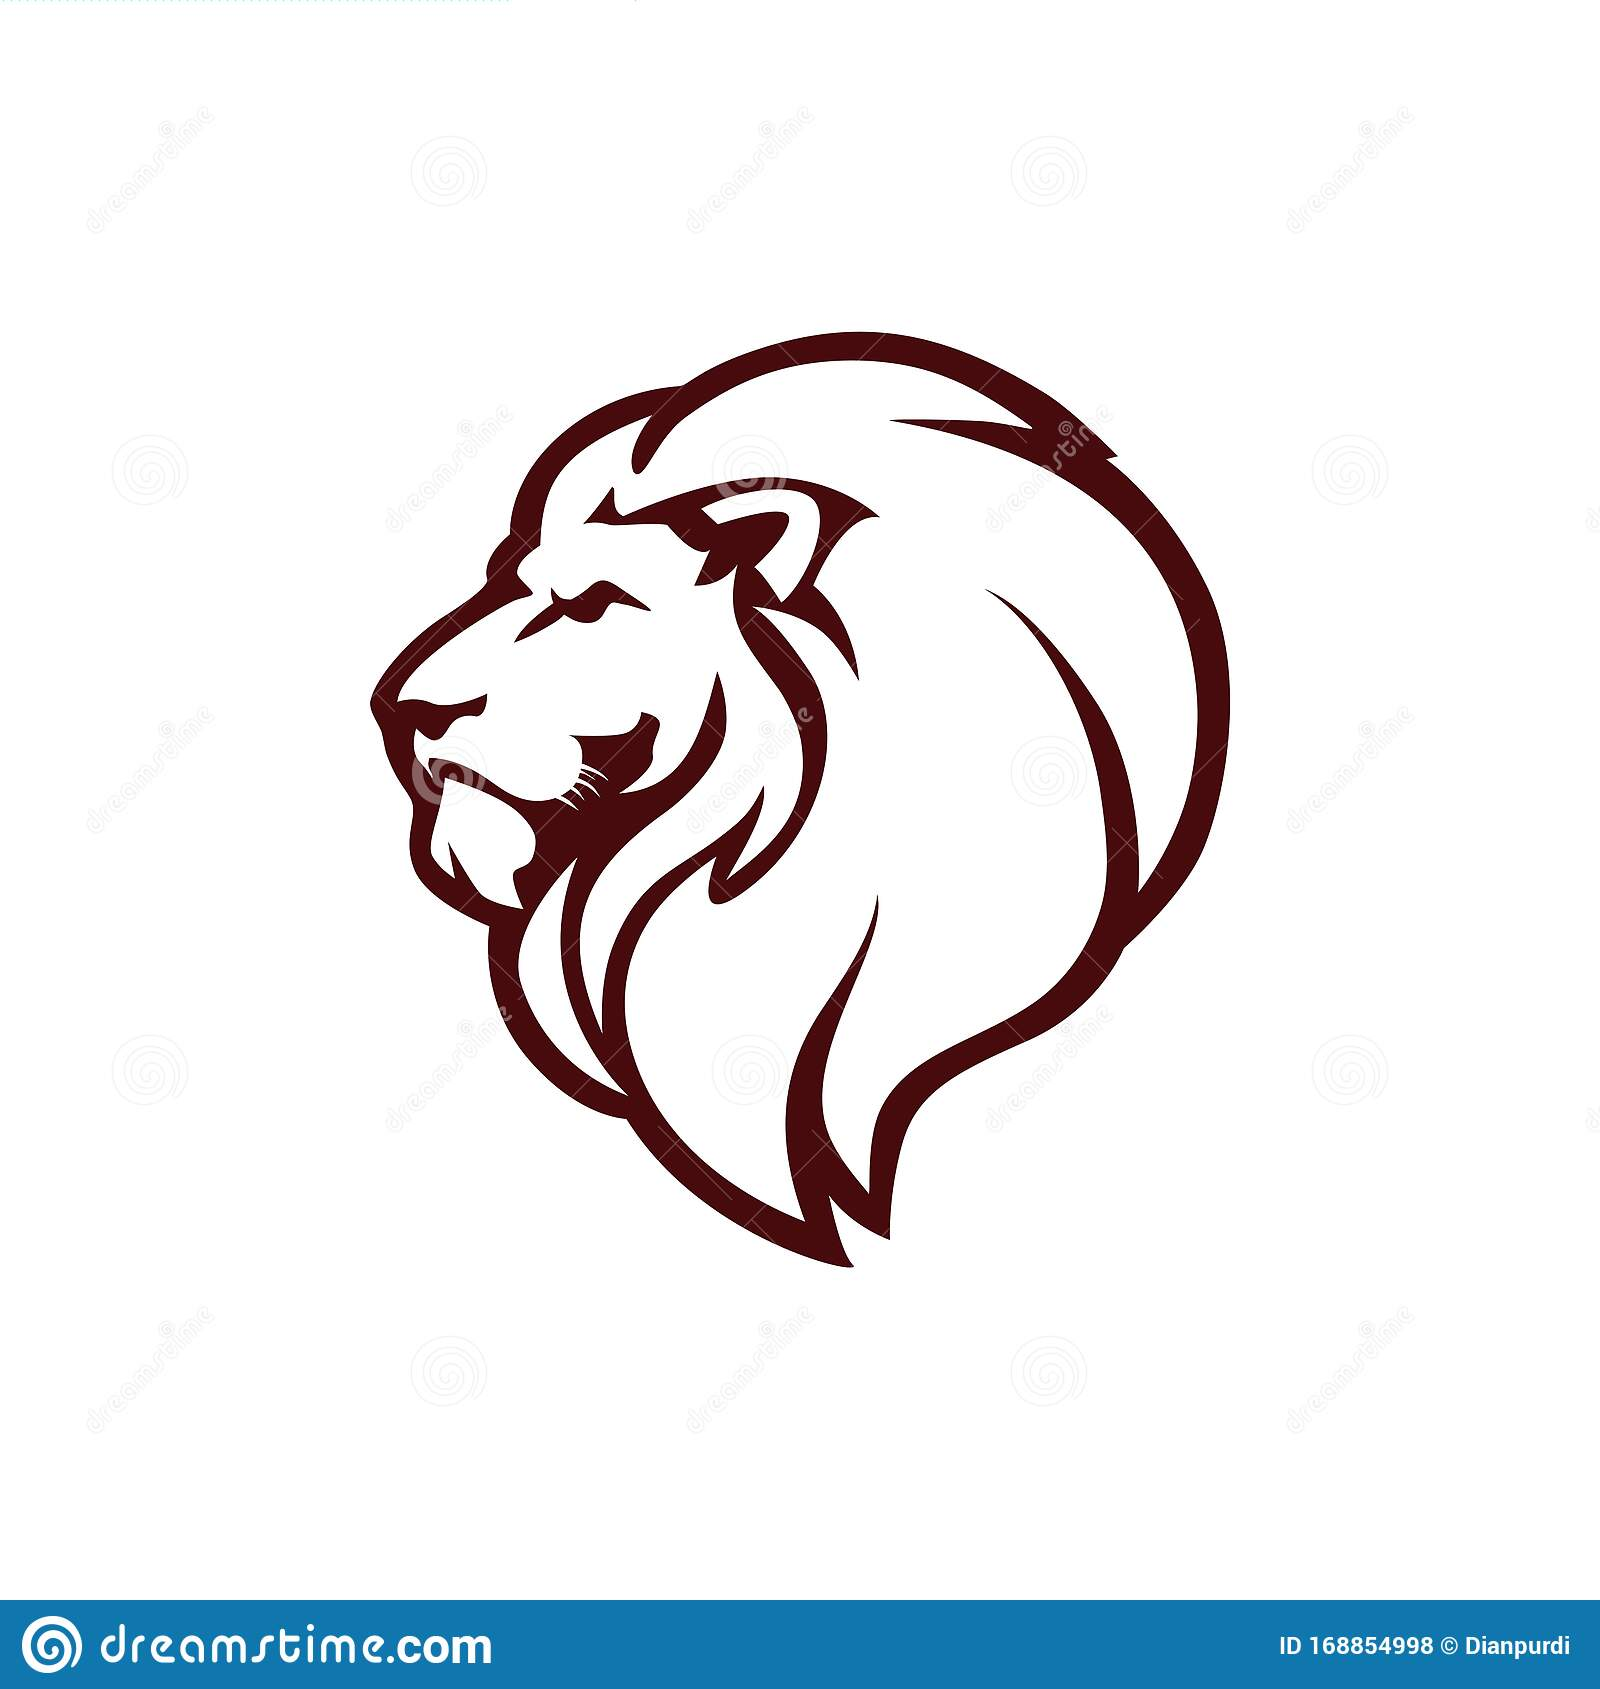 Lion Outline Face Stock Illustrations 1 203 Lion Outline Face Stock Illustrations Vectors Clipart Dreamstime Polish your personal project or design with these lion head transparent png images, make it even more personalized and more attractive. https www dreamstime com angry lion head logo icon sign outline flat design vector illustration angry lion head logo icon sign outline flat design vector image168854998